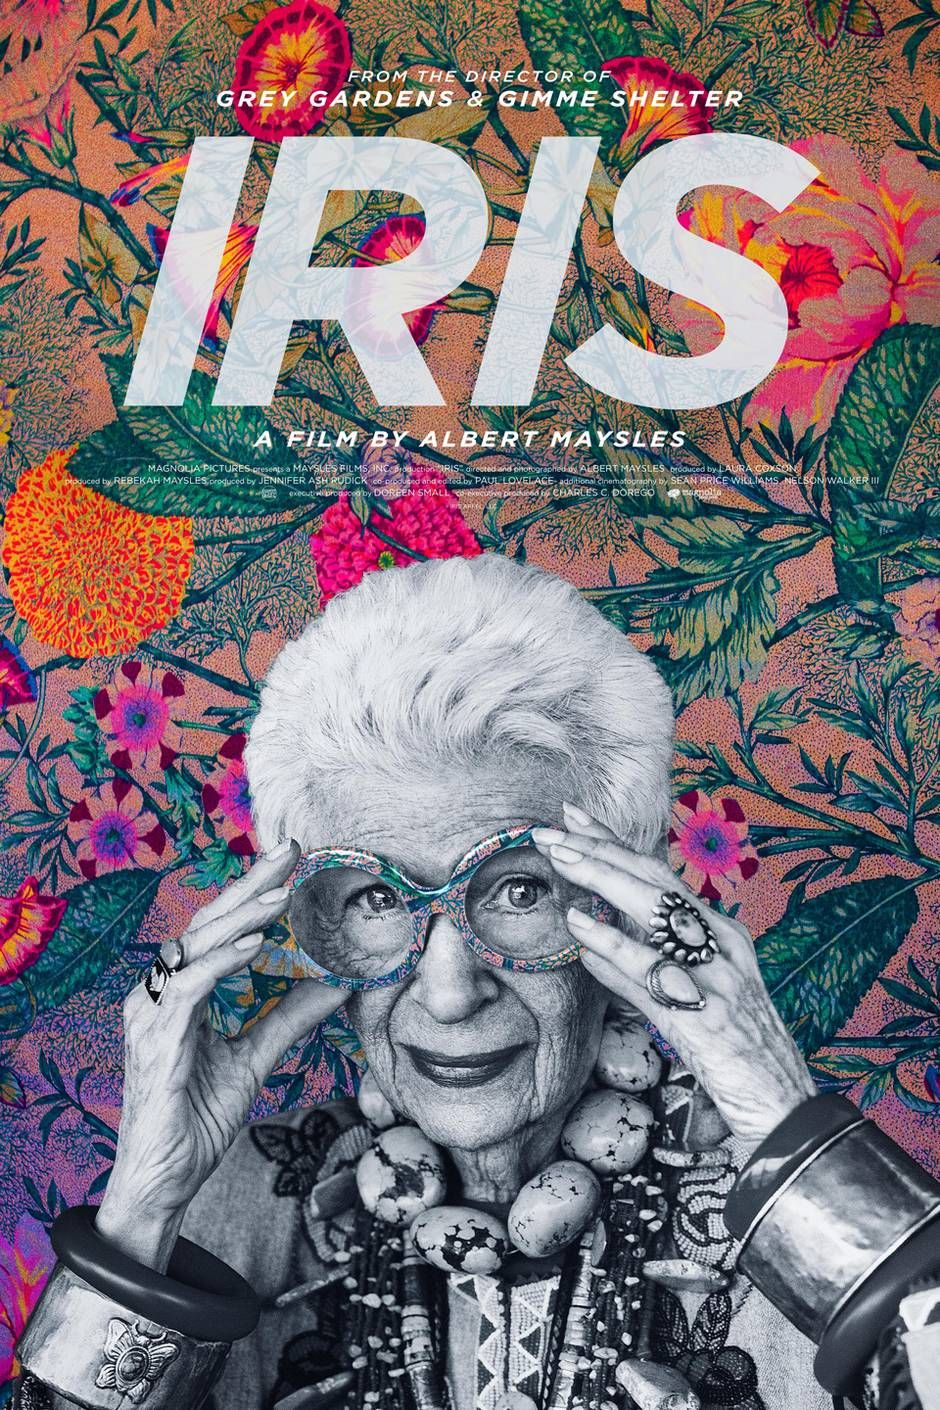 The Iris Apfel effect: At 93, one of fashion's favourite muses harnesses the power of her age to defy convention - The Globe and Mail